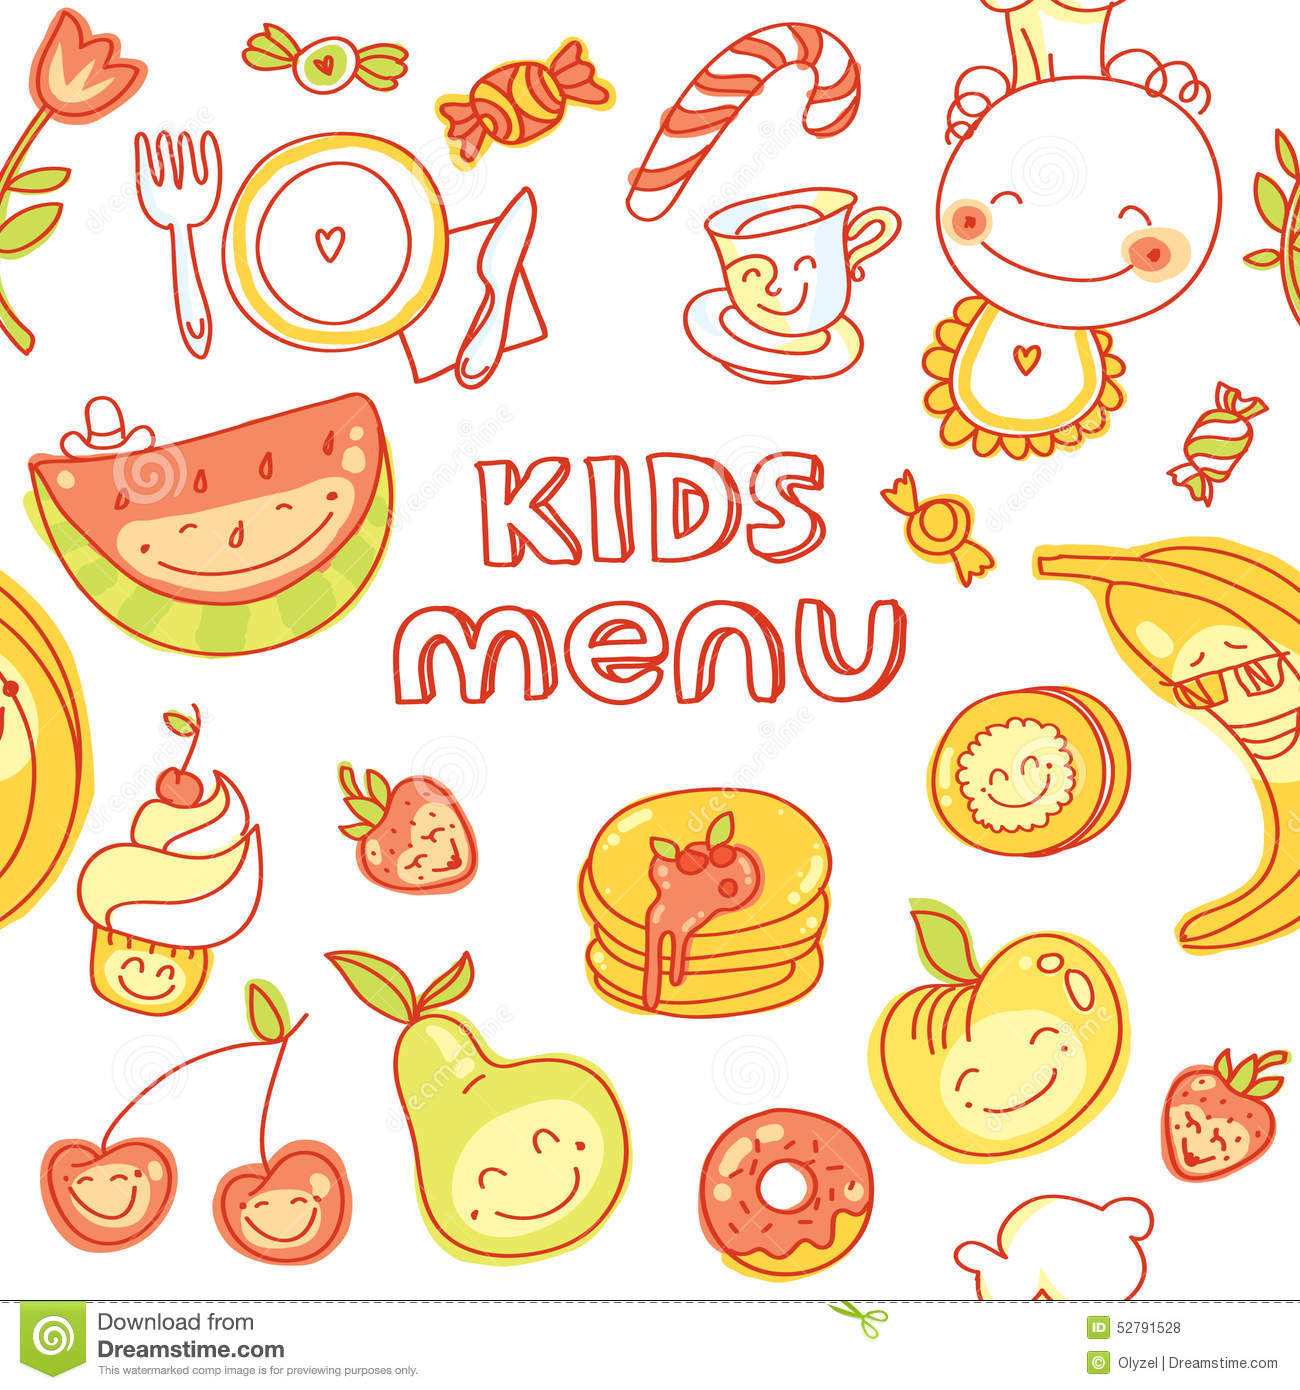 Child And Baby Food Kids Menu With Colorful Stock Vector Image 52791528